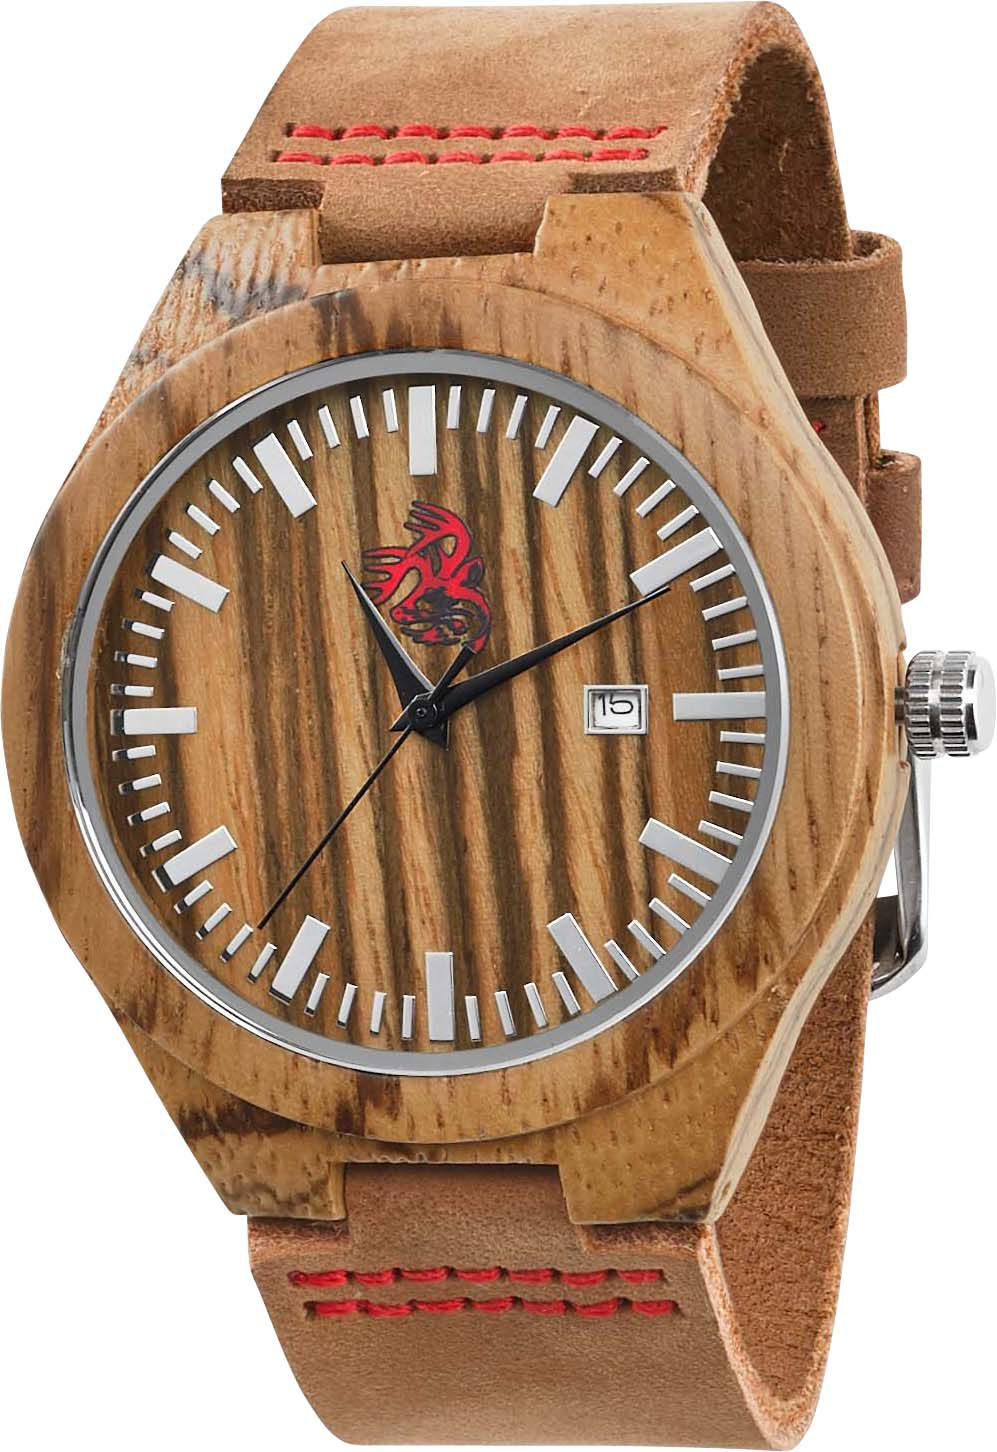 images s originalgrain from best on men perfect reclaimed whiskey looking all barrel watches is pinterest the made gift him barrels bourbon mens for